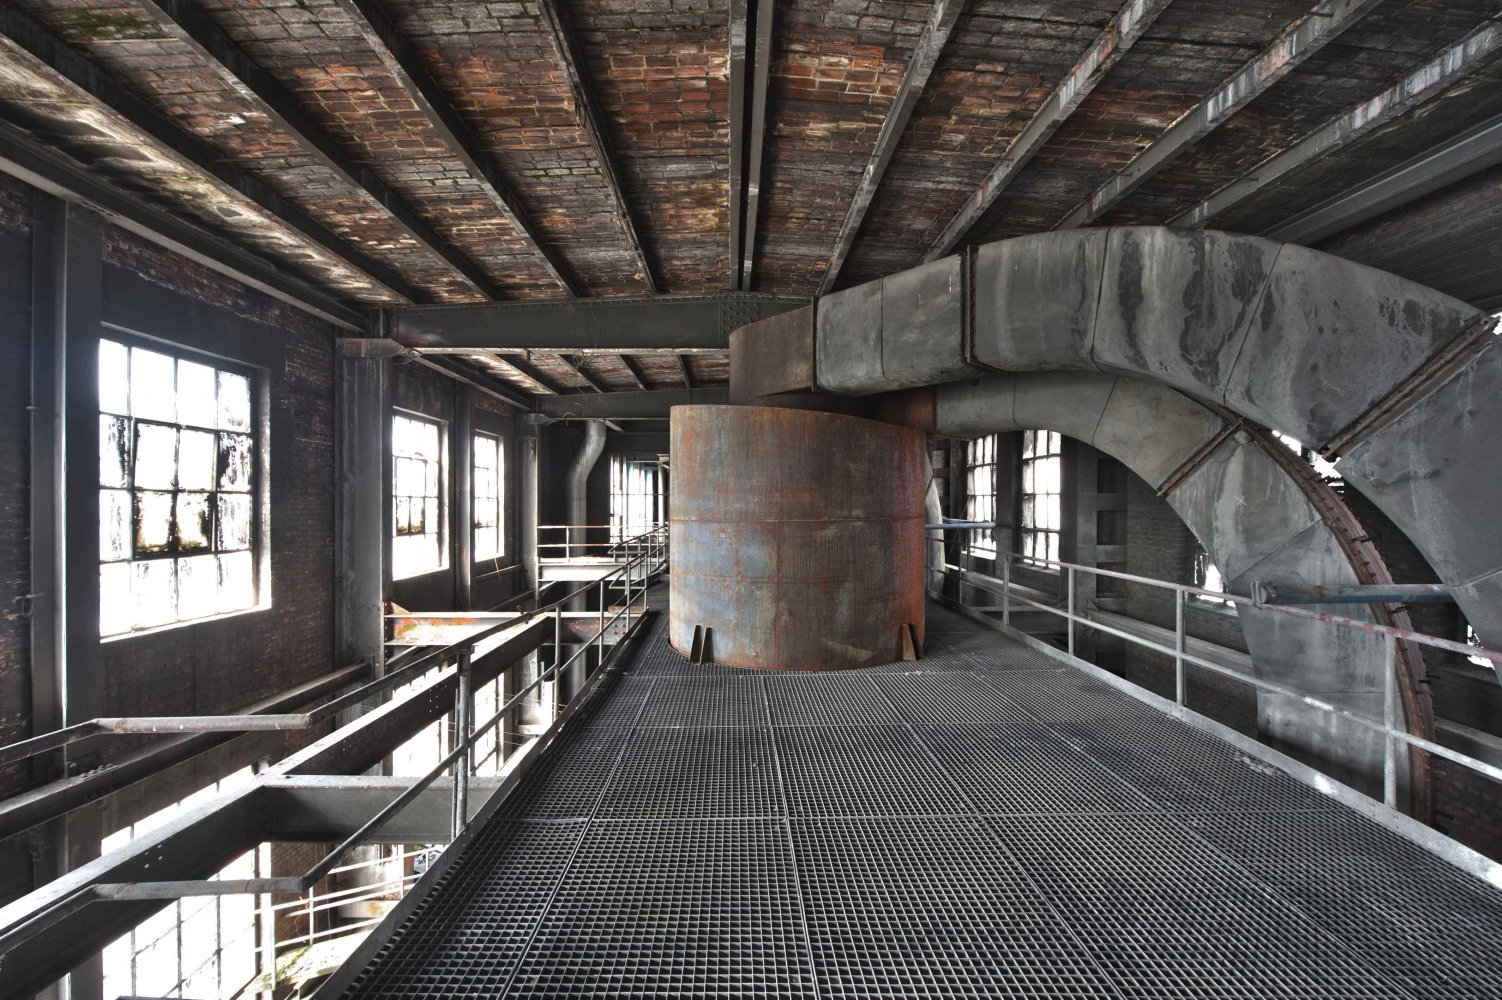 hidden in the attic - POWER STATION - cesar azcarate photography, galleries, power station